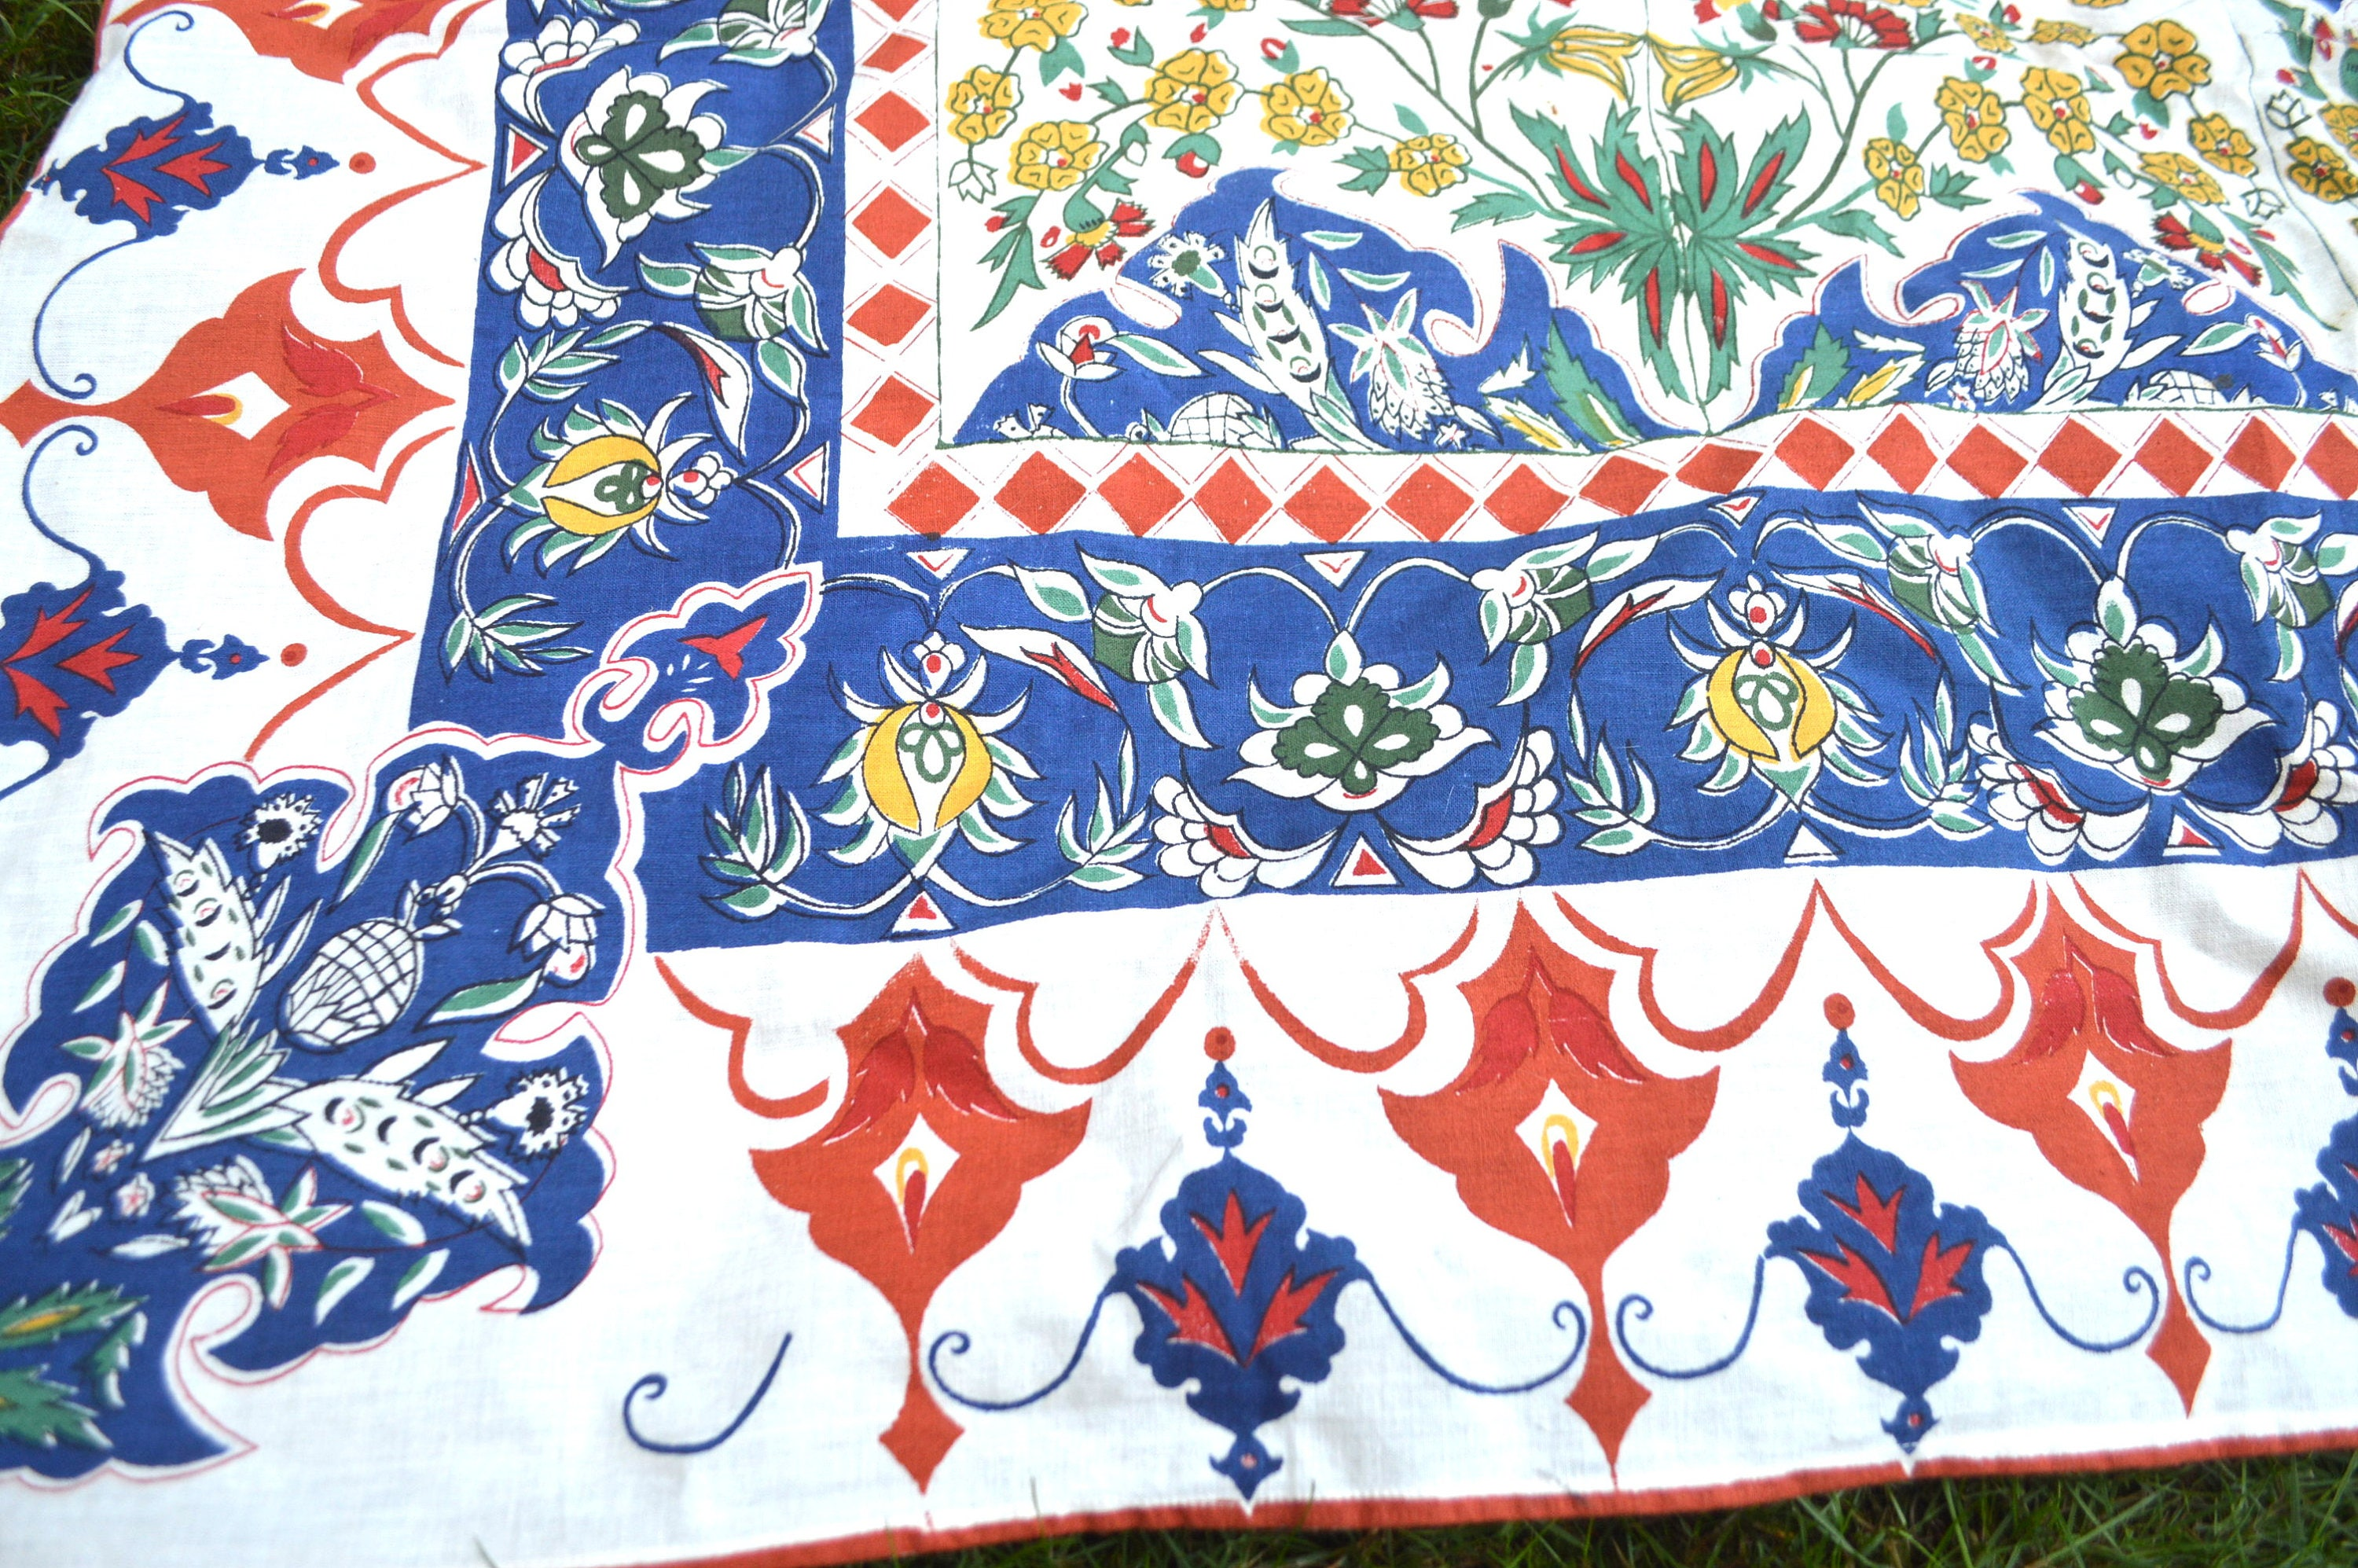 Vintage 90s 1993 Hippie Wall Hanging Tablecloth Home Decor